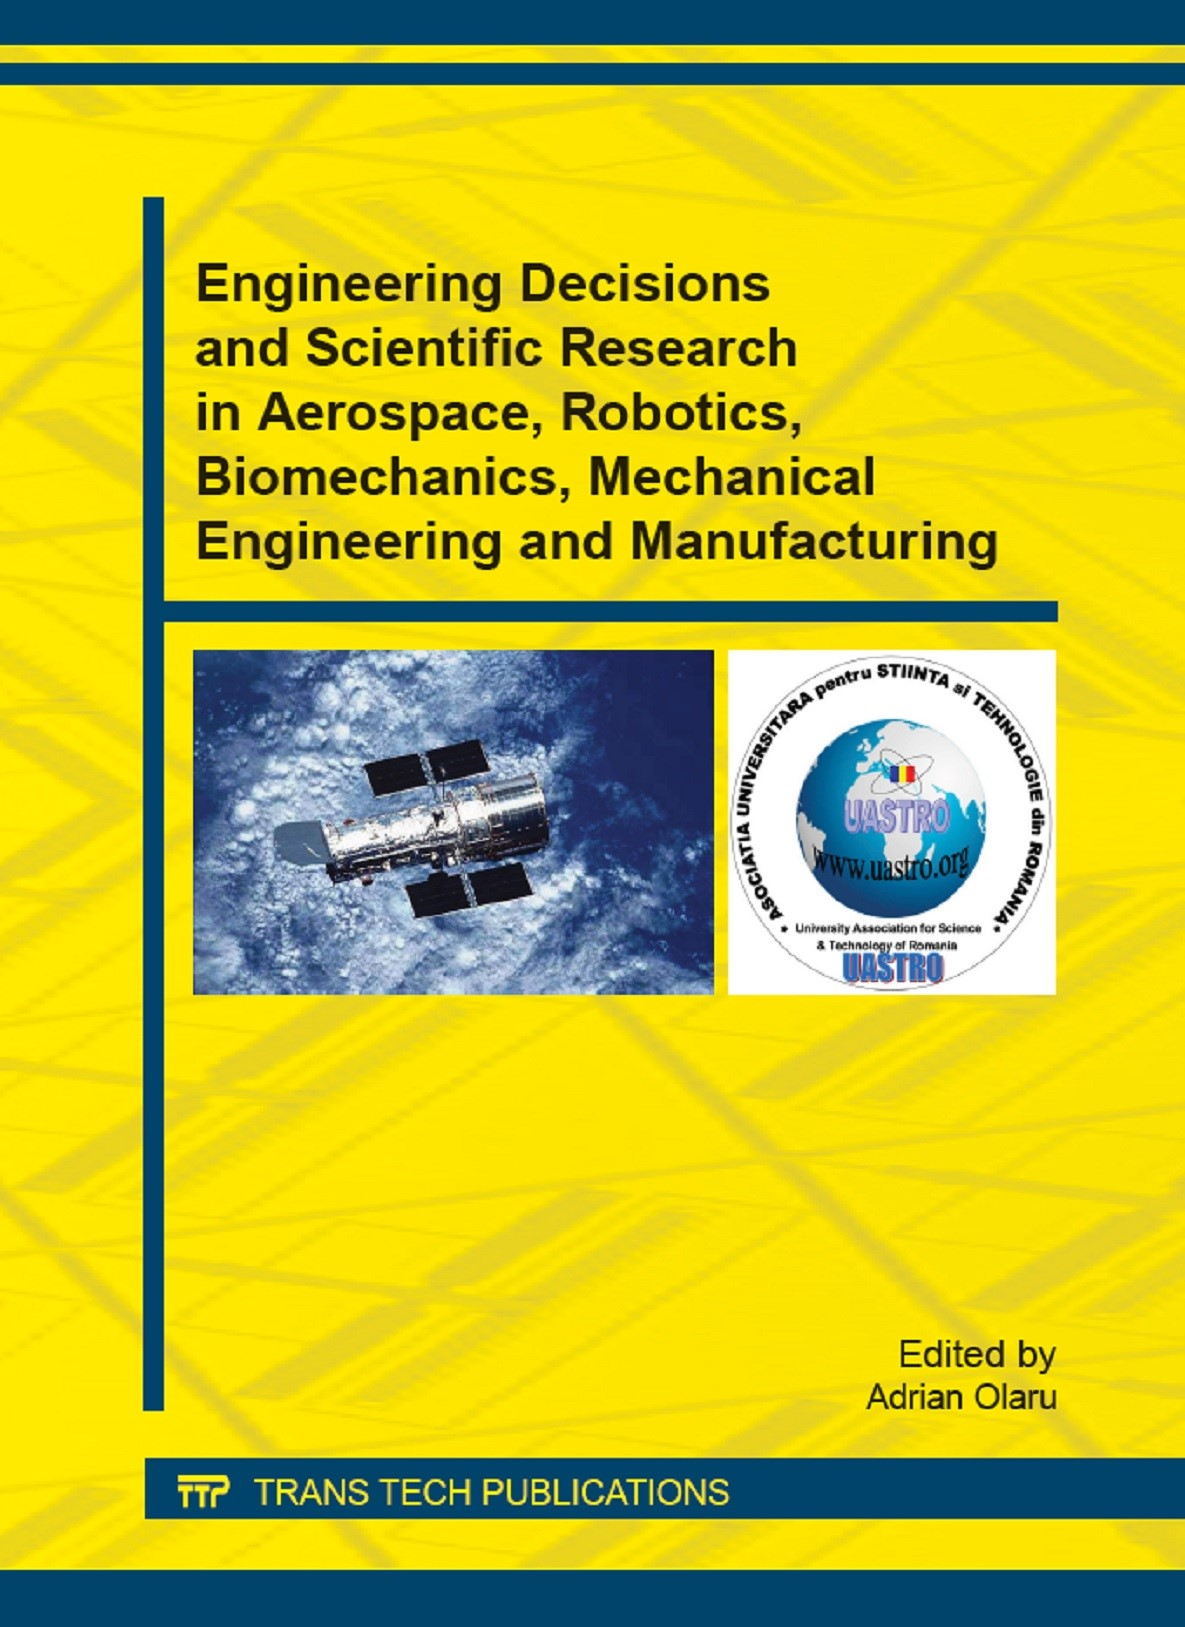 Engineering Decisions and Scientific Research in Aerospace, Robotics, Biomechanics, Mechanical Engineering and Manufacturing | Olaru, 2013 | Buch (Cover)